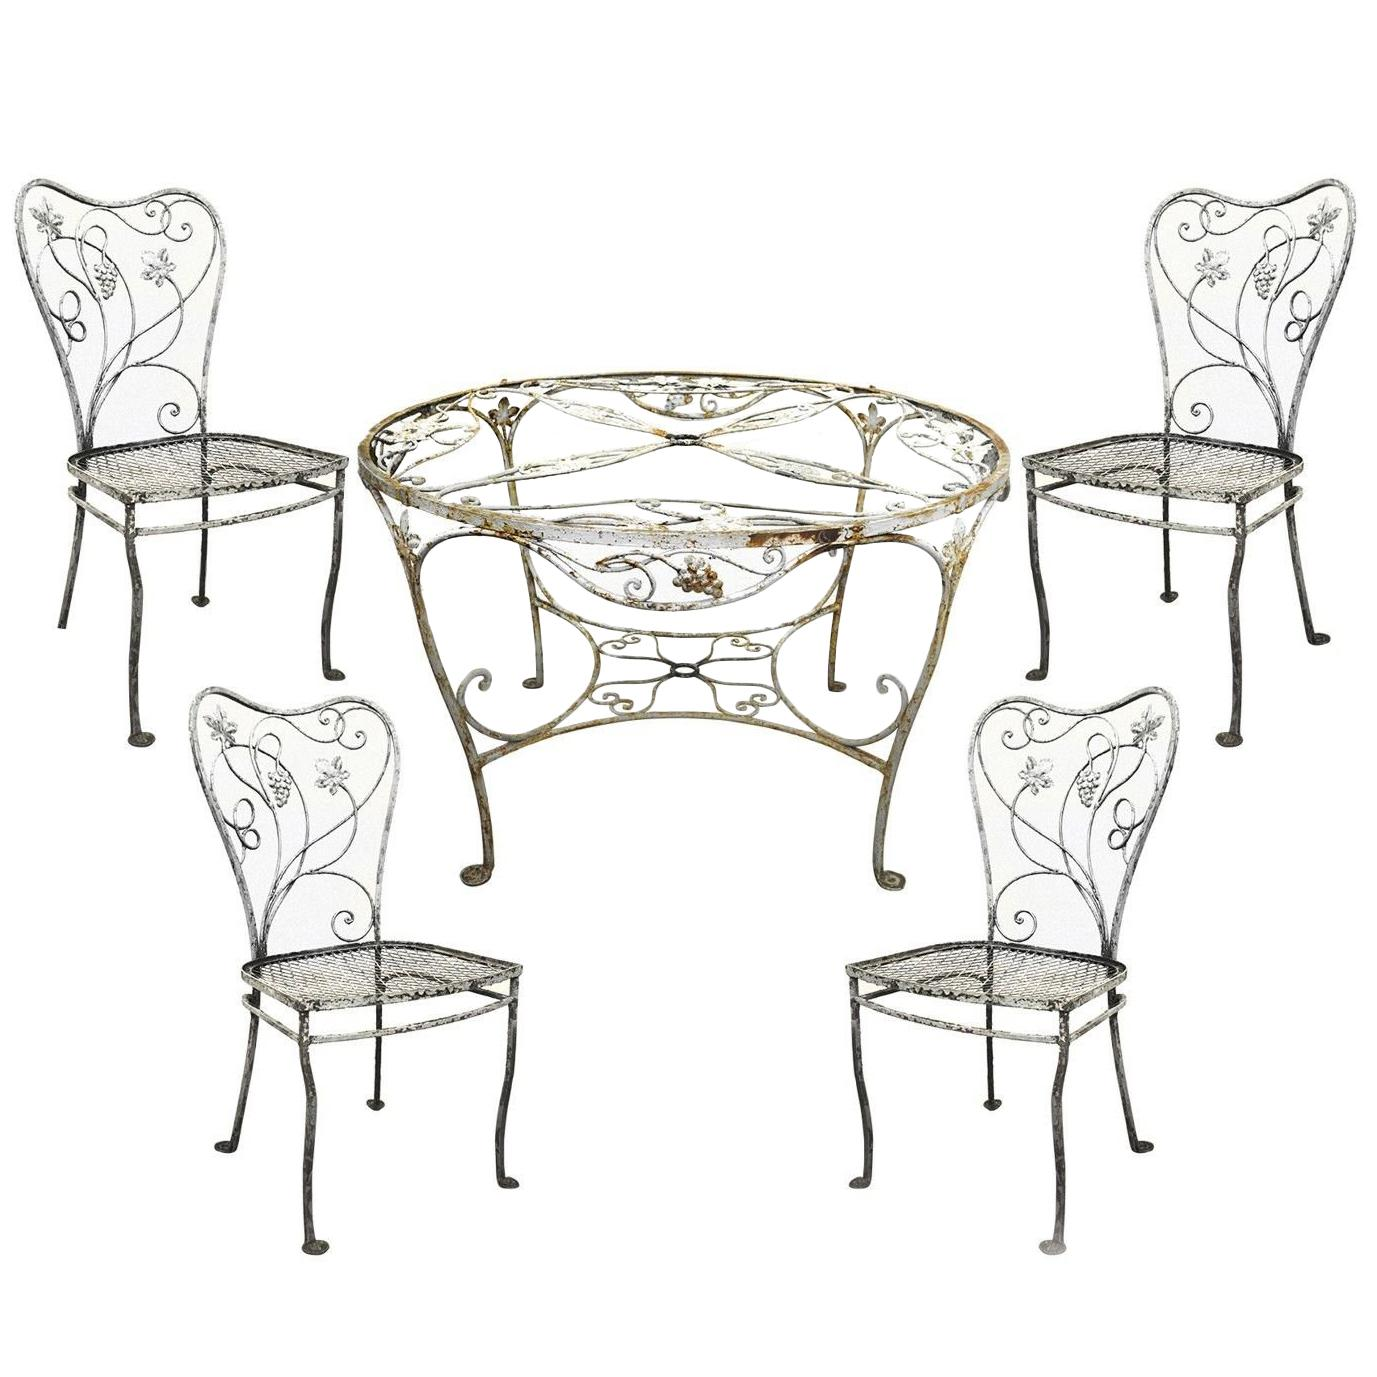 Art Nouveau 5 Pc Wrought Iron Patio Dining Set Round Table 4 Chair  Salterini For Sale